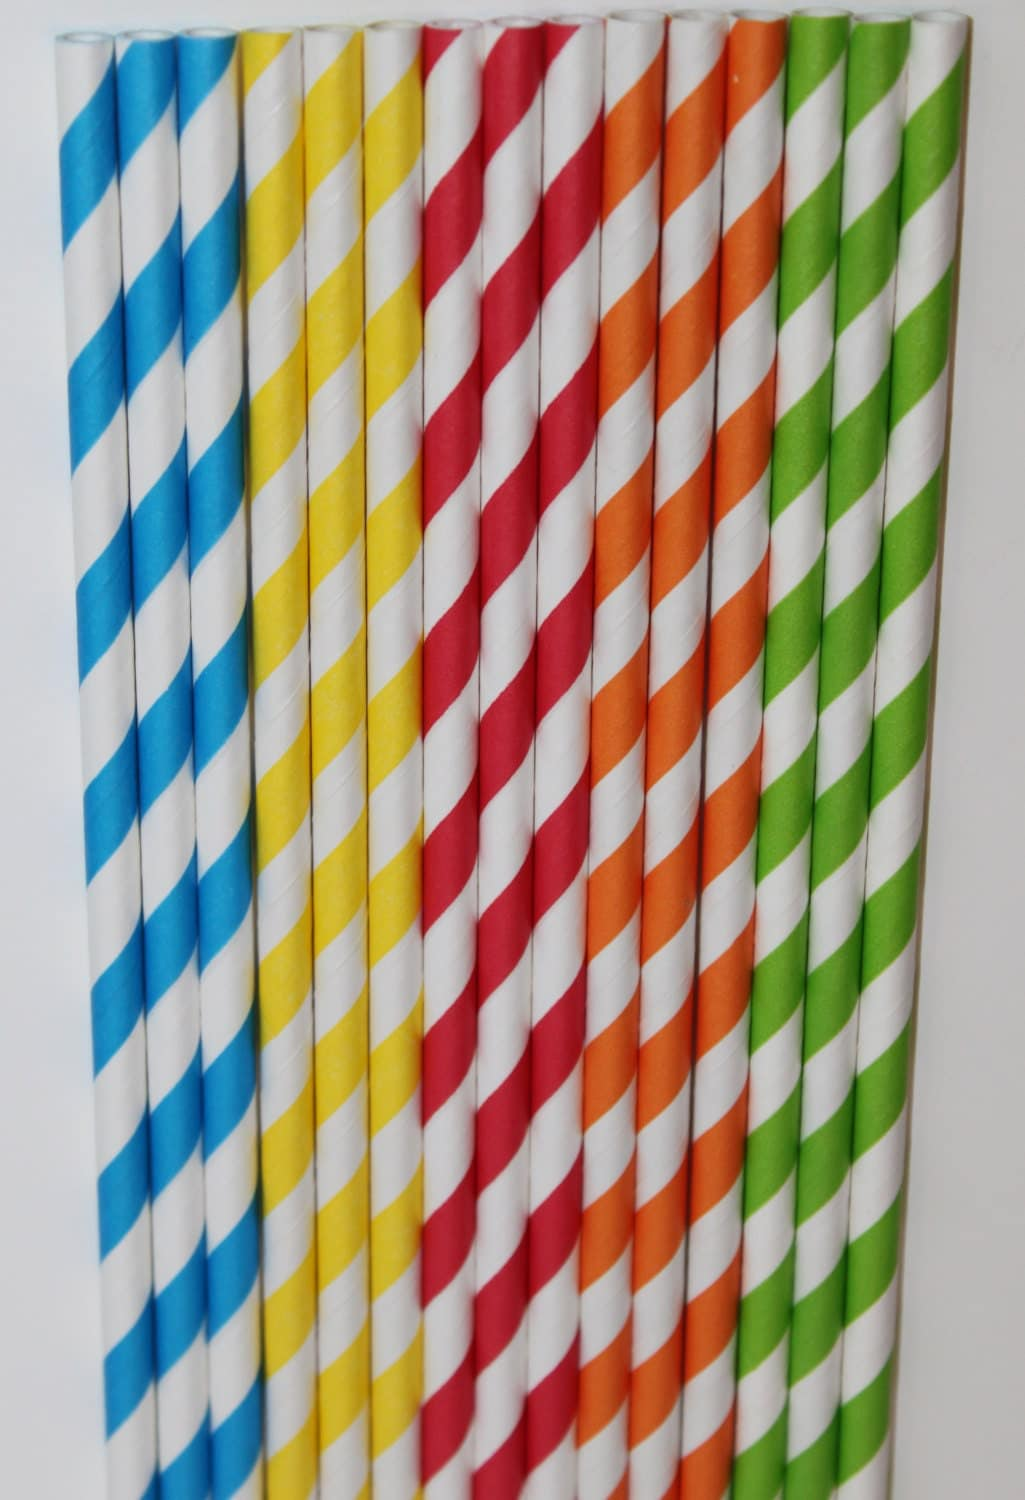 50 Sesame Street Inspired yellow green blue red orange Stripe straws paper straws birthday party cake pop sticks Bonus diy straw flags